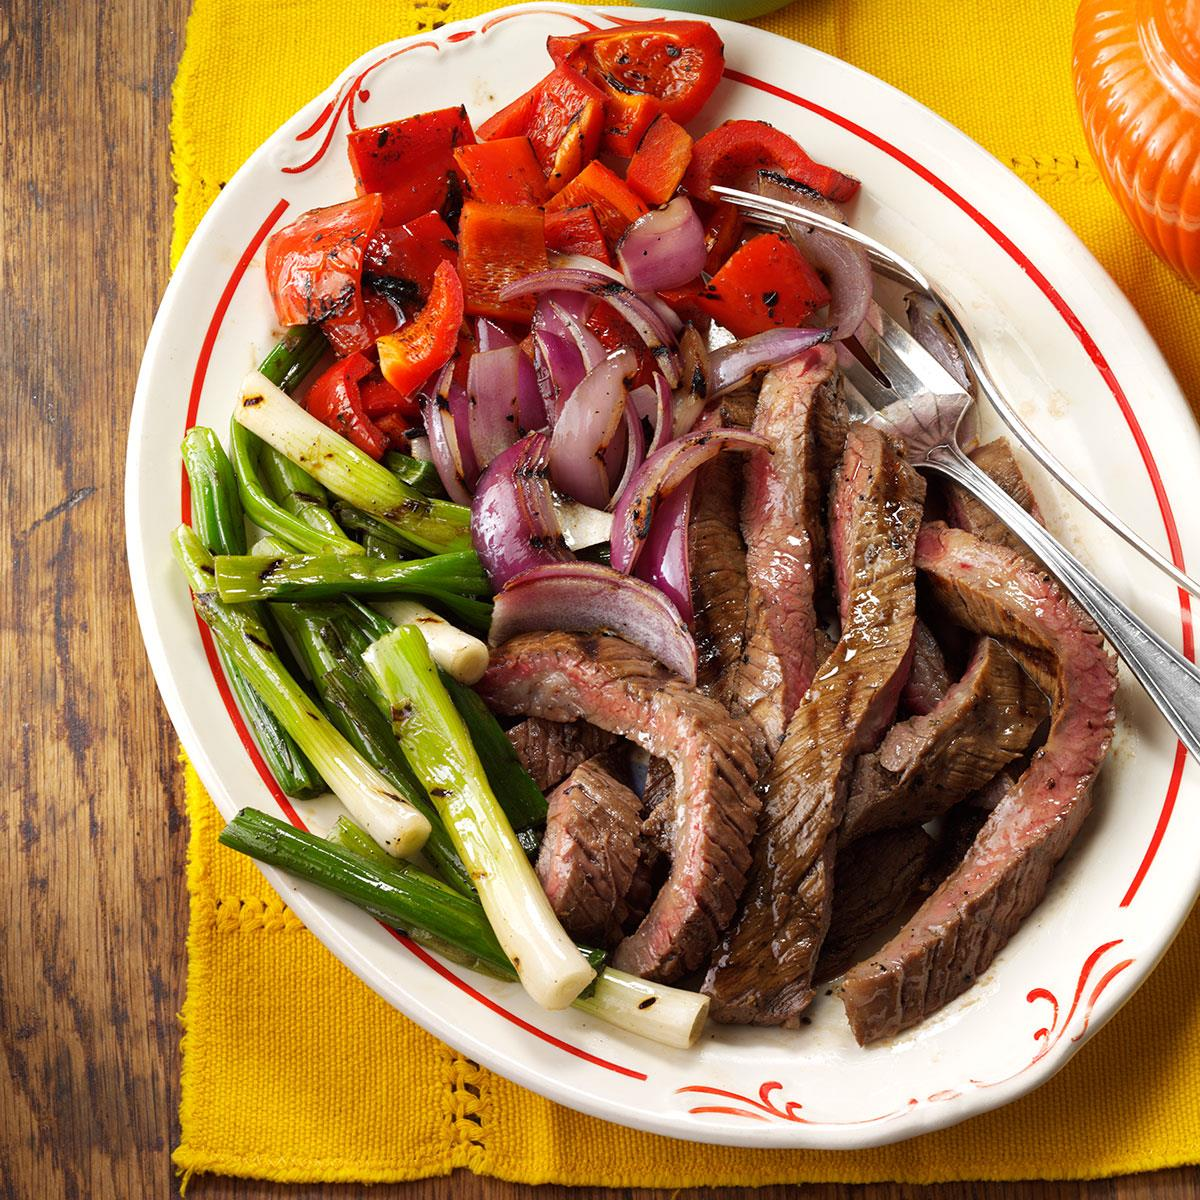 Grilled Skirt Steak Calories